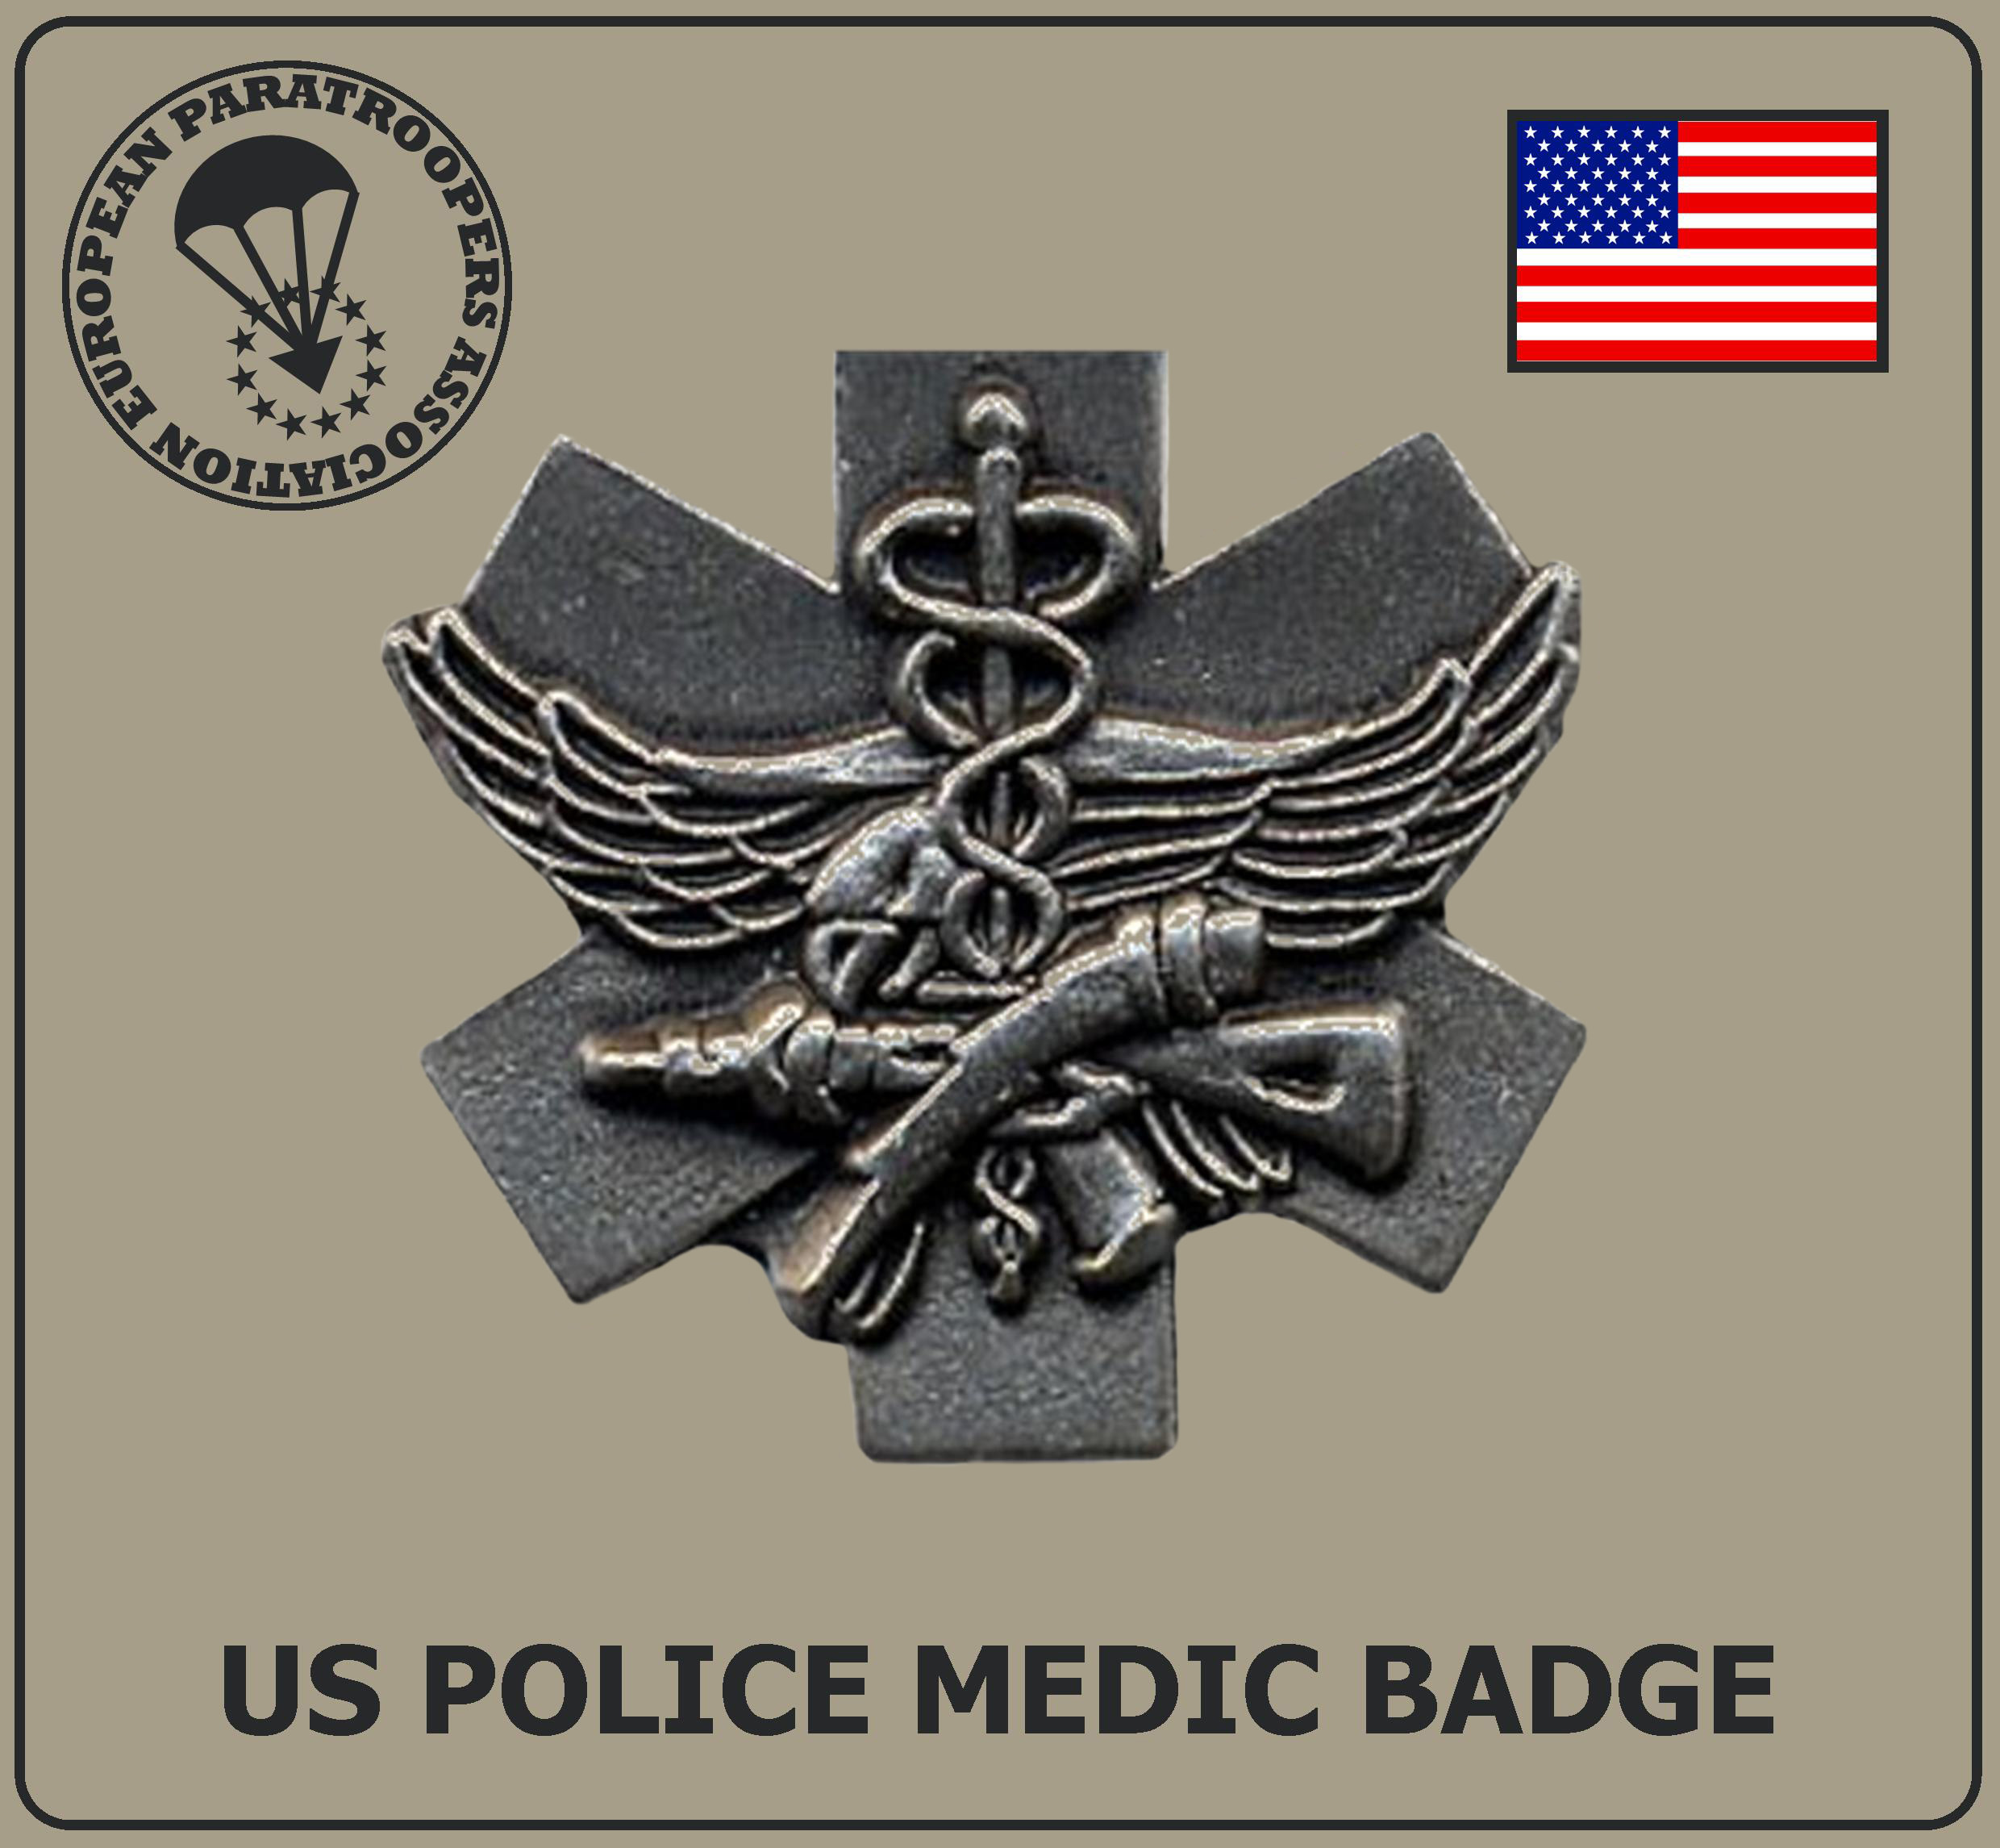 US POLICE MEDIC BADGE